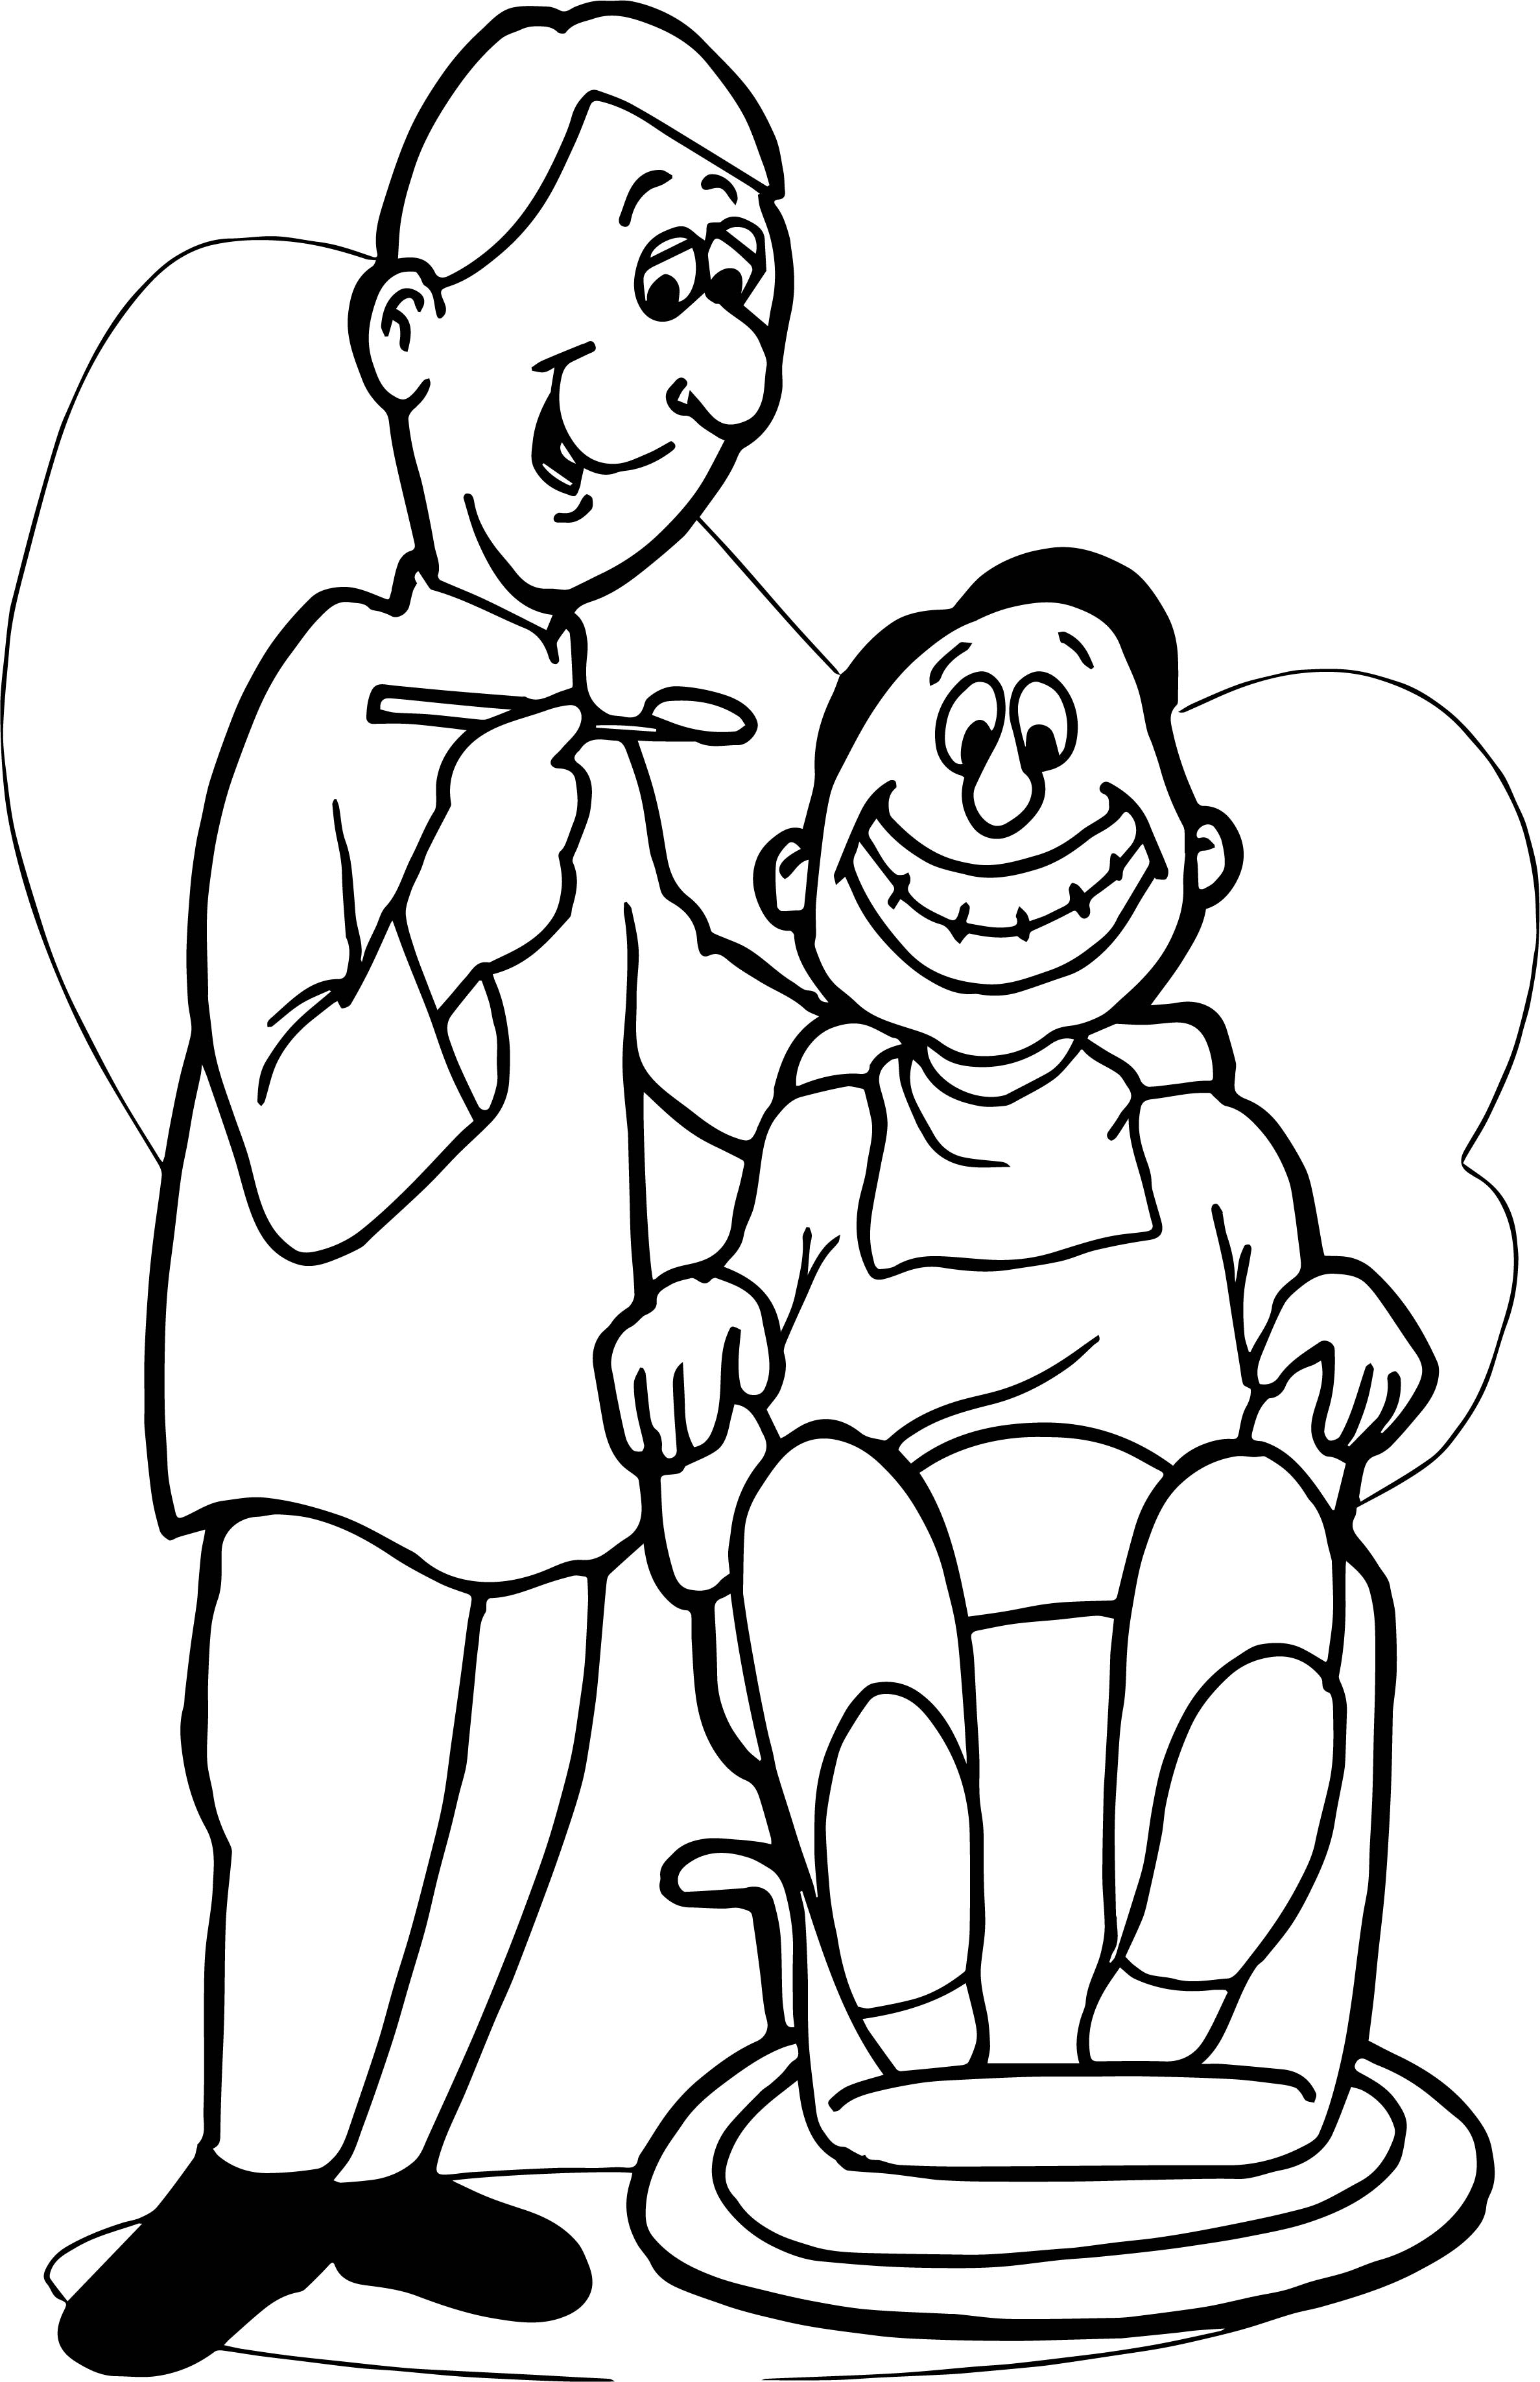 Fine Milkshake Coloring Pages Mold Ways to Use Coloring Pages Download Of The Most Awesome Dental Coloring Sheets Coloring Pages & Coloring Gallery